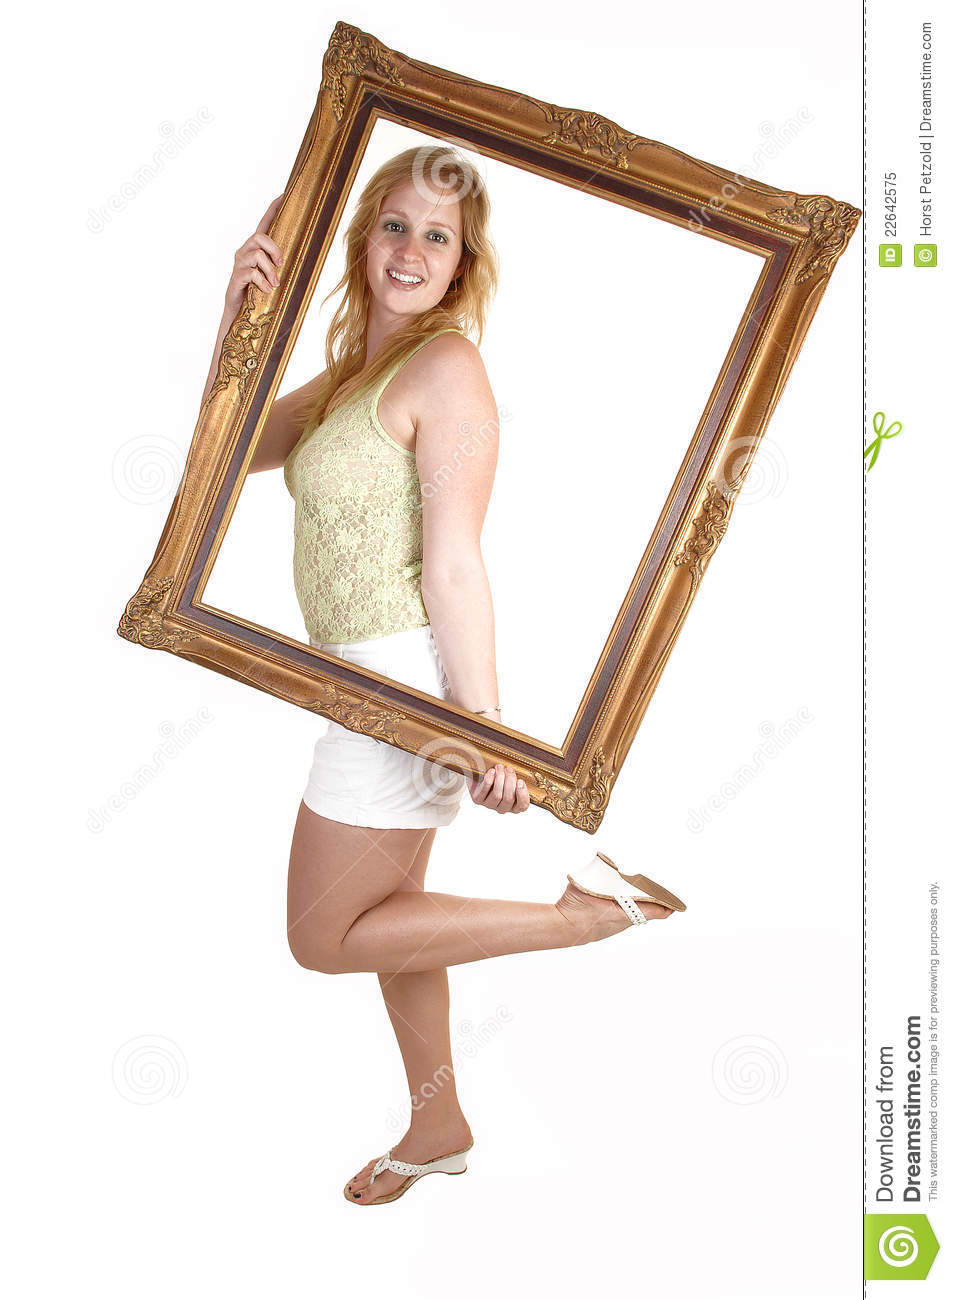 Girl with picture frame.